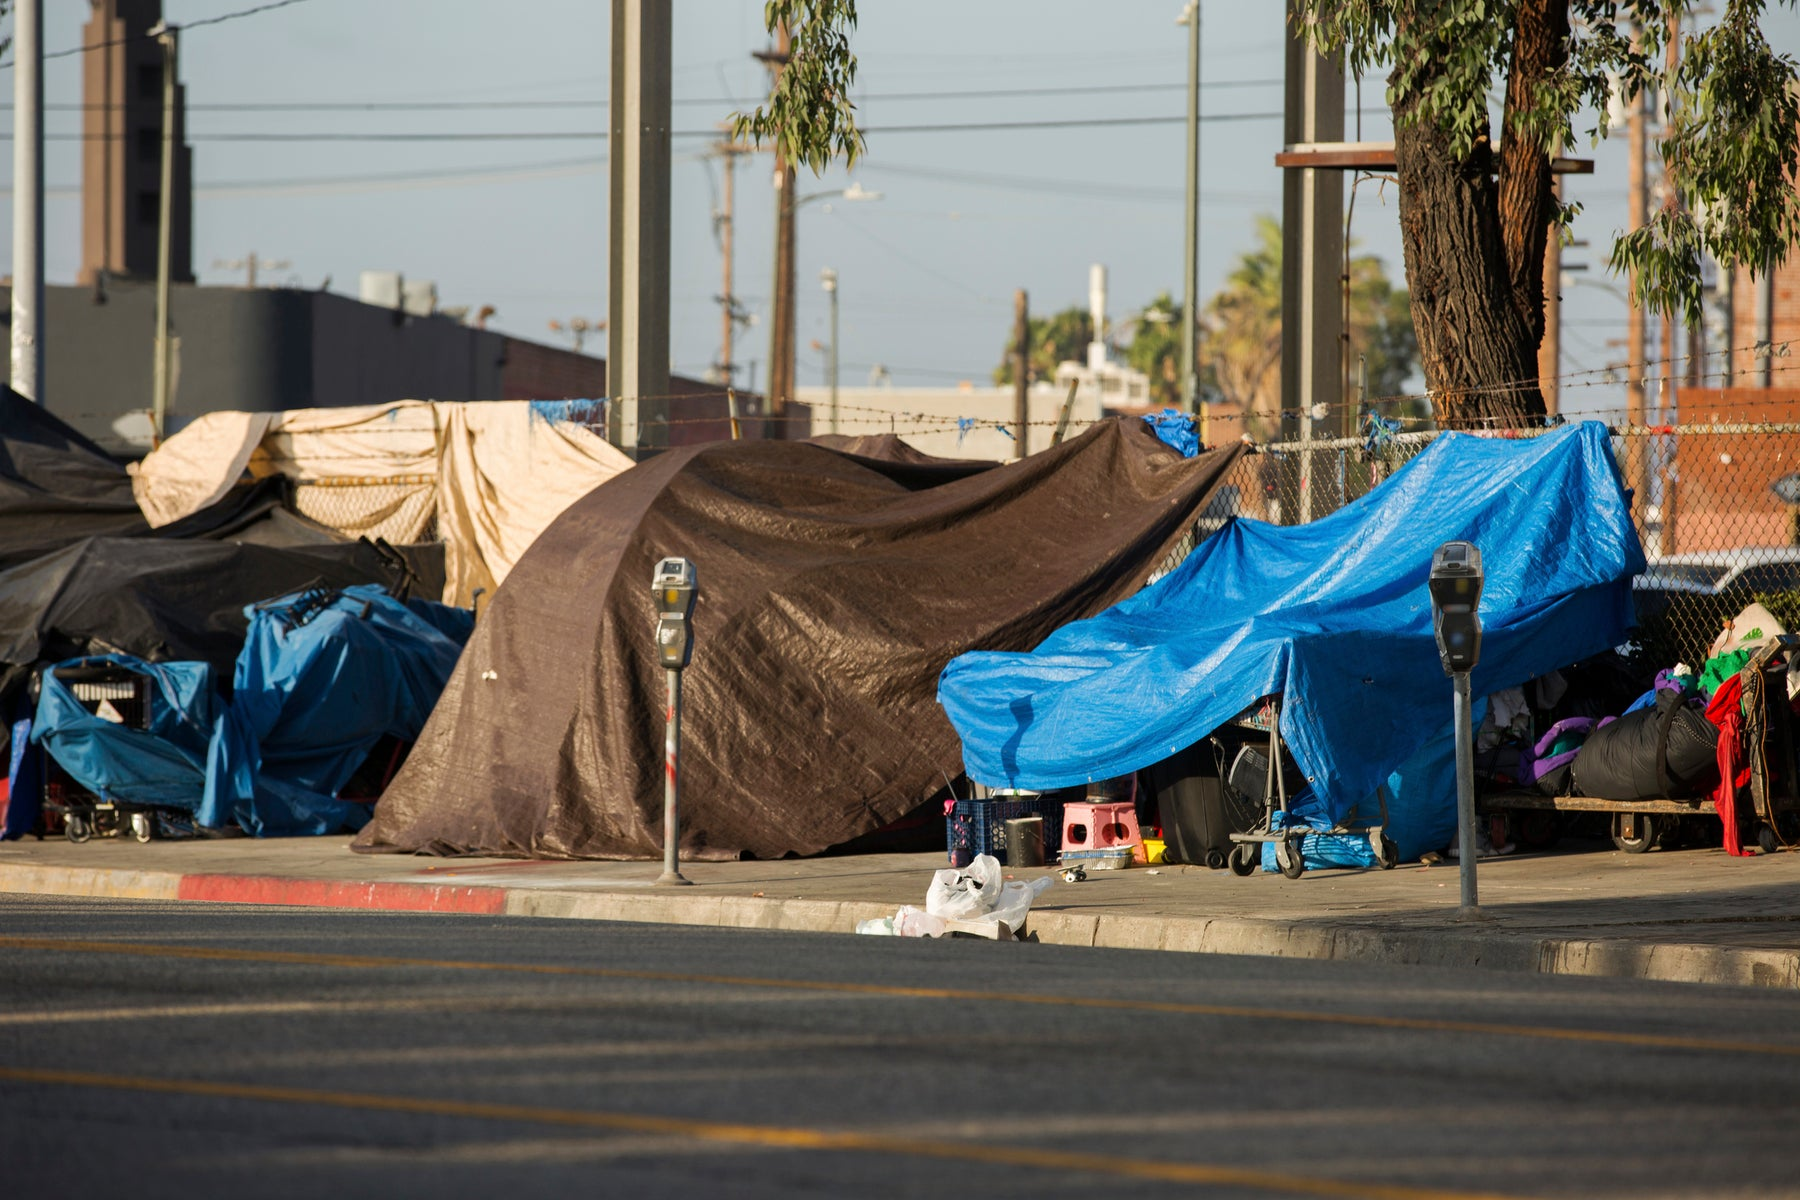 View of the homeless encampments along Central Avenue in Downtown Los Angeles, California